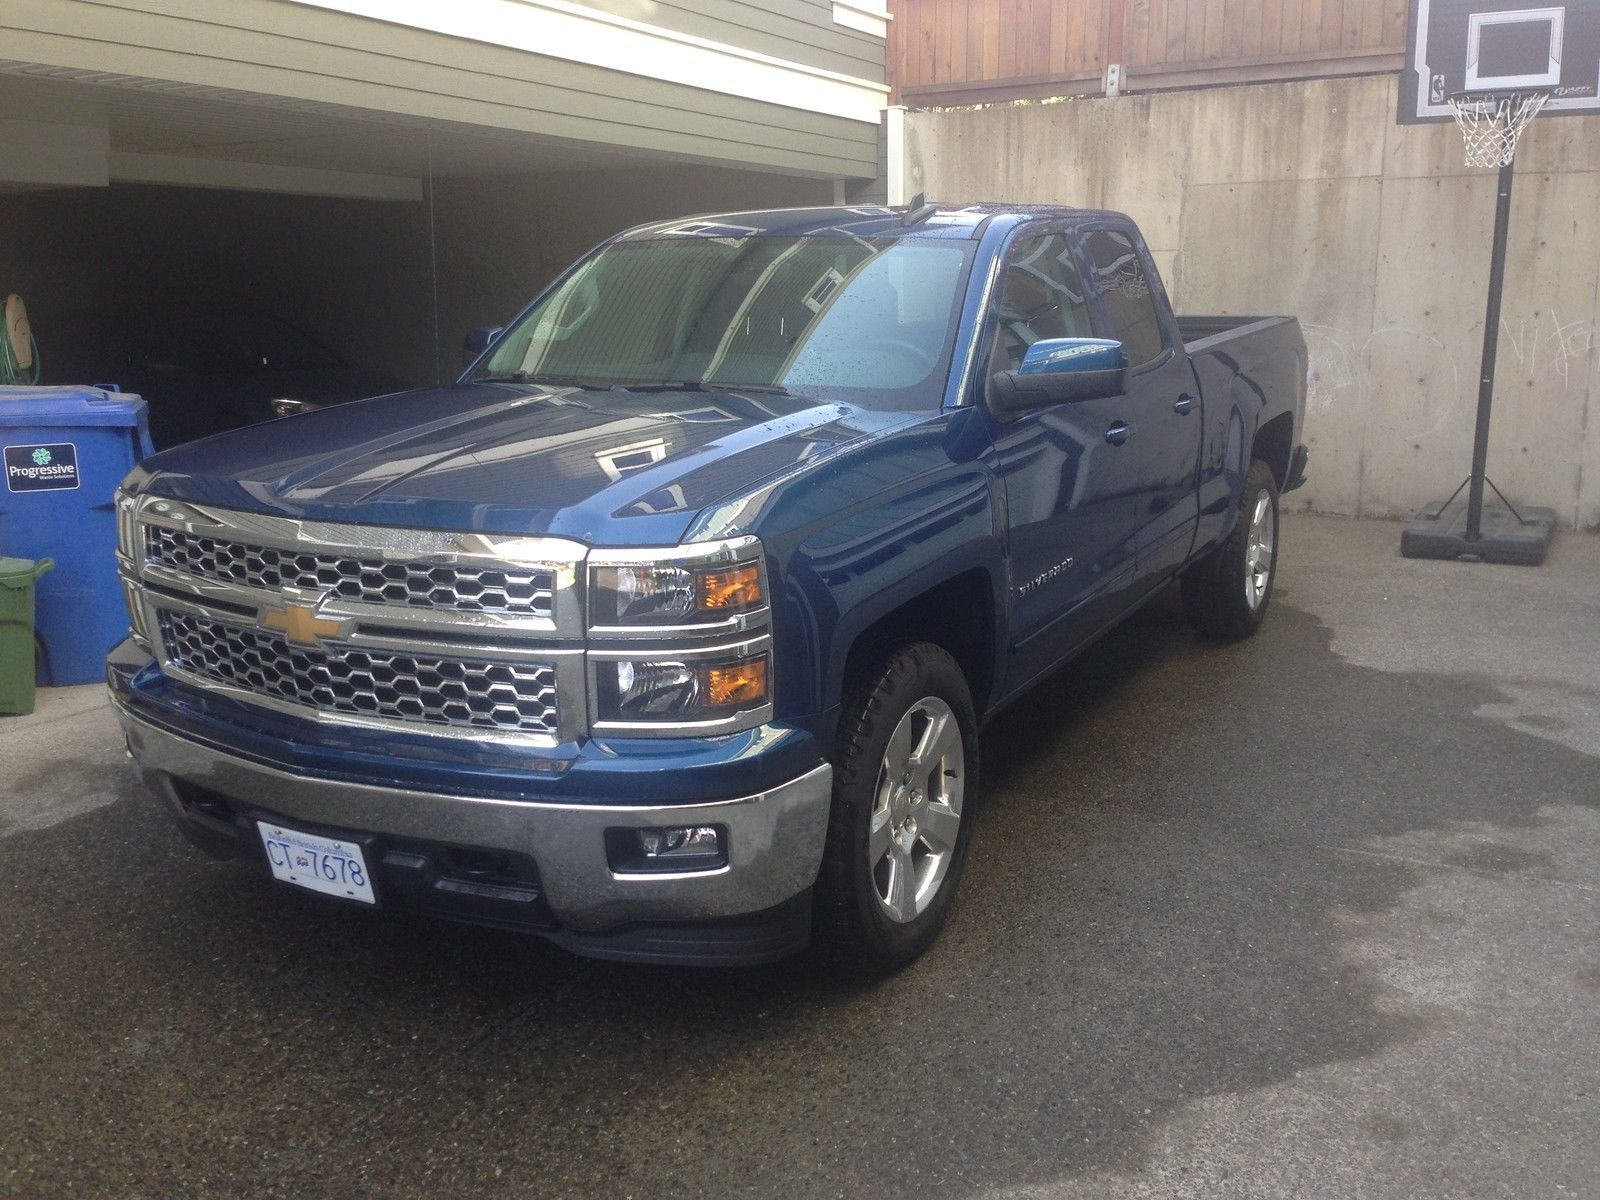 2015 chevrolet silverado 1500 lt extended cab pickup 4 door 5 3l pickups for sale pinterest. Black Bedroom Furniture Sets. Home Design Ideas